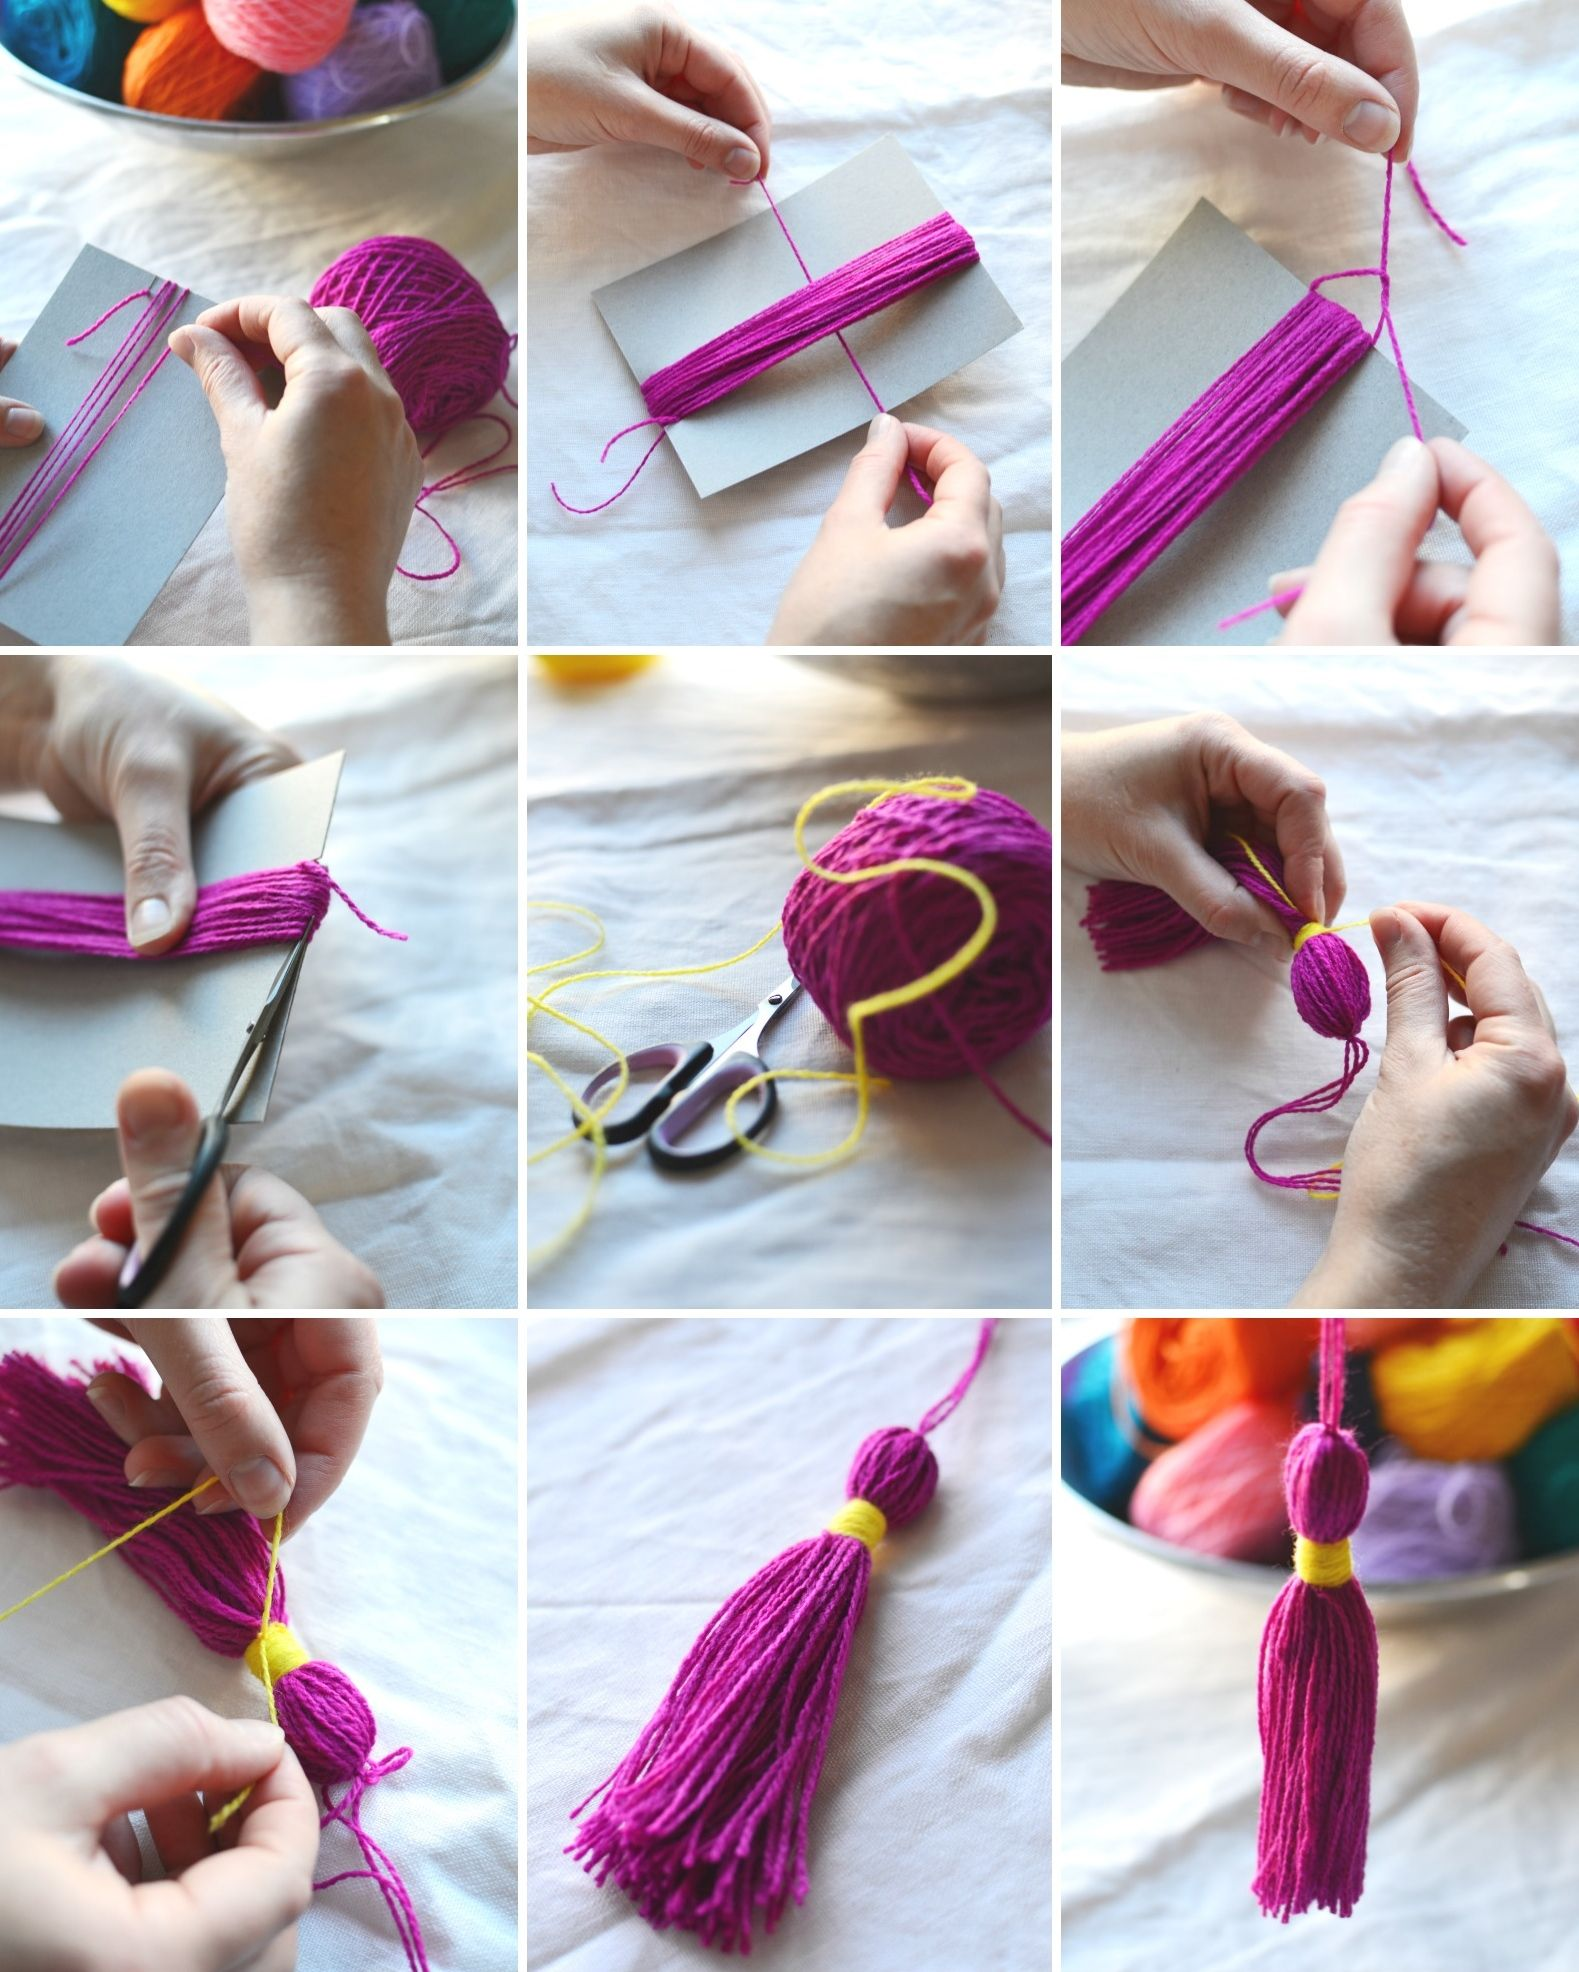 2) How to make a tassel step by step. (see blog for rest of pictures)